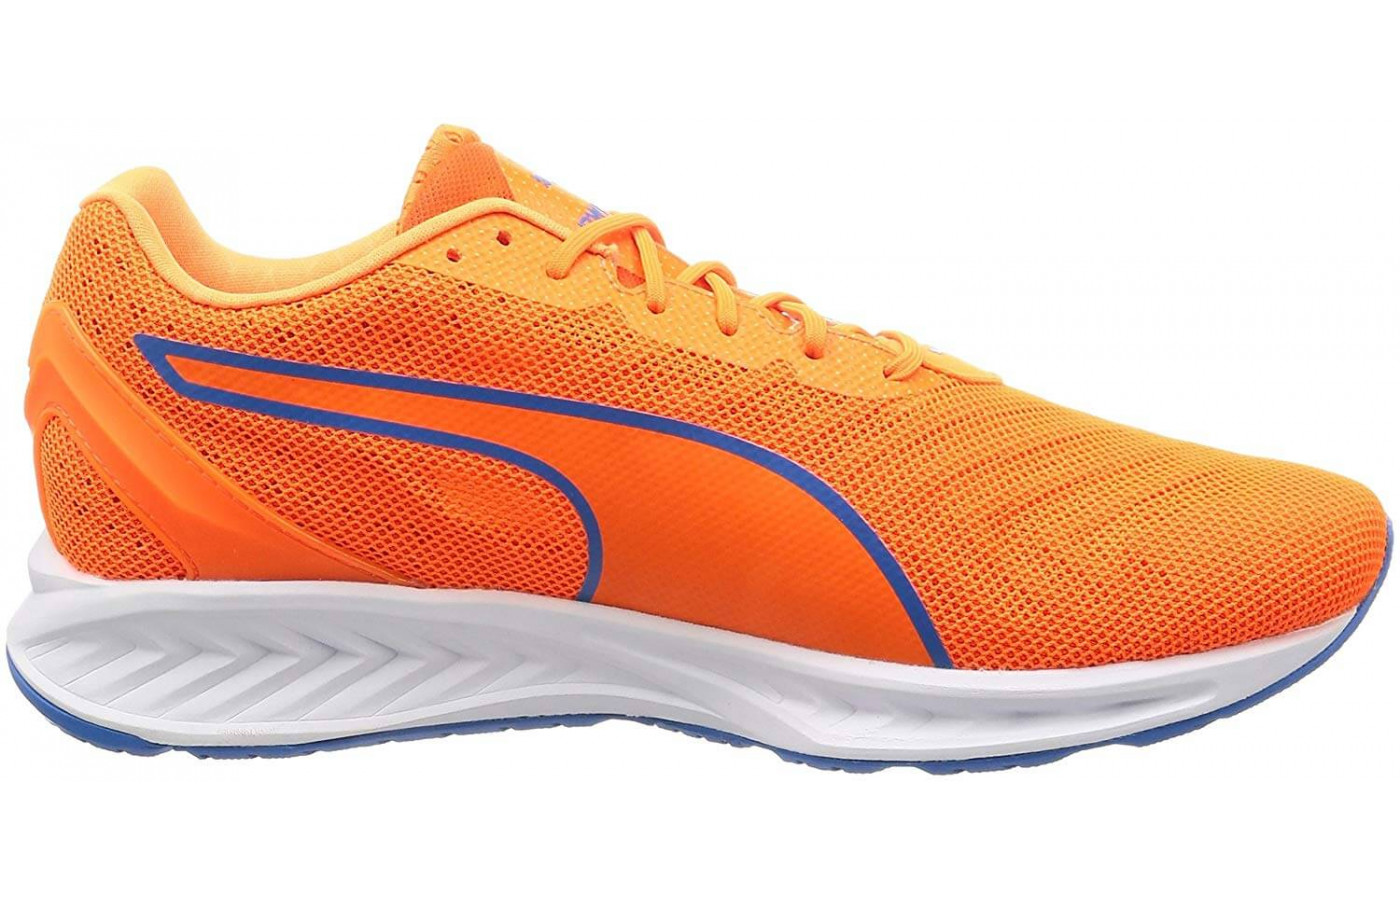 This shoes comes in bright, stylish color options.